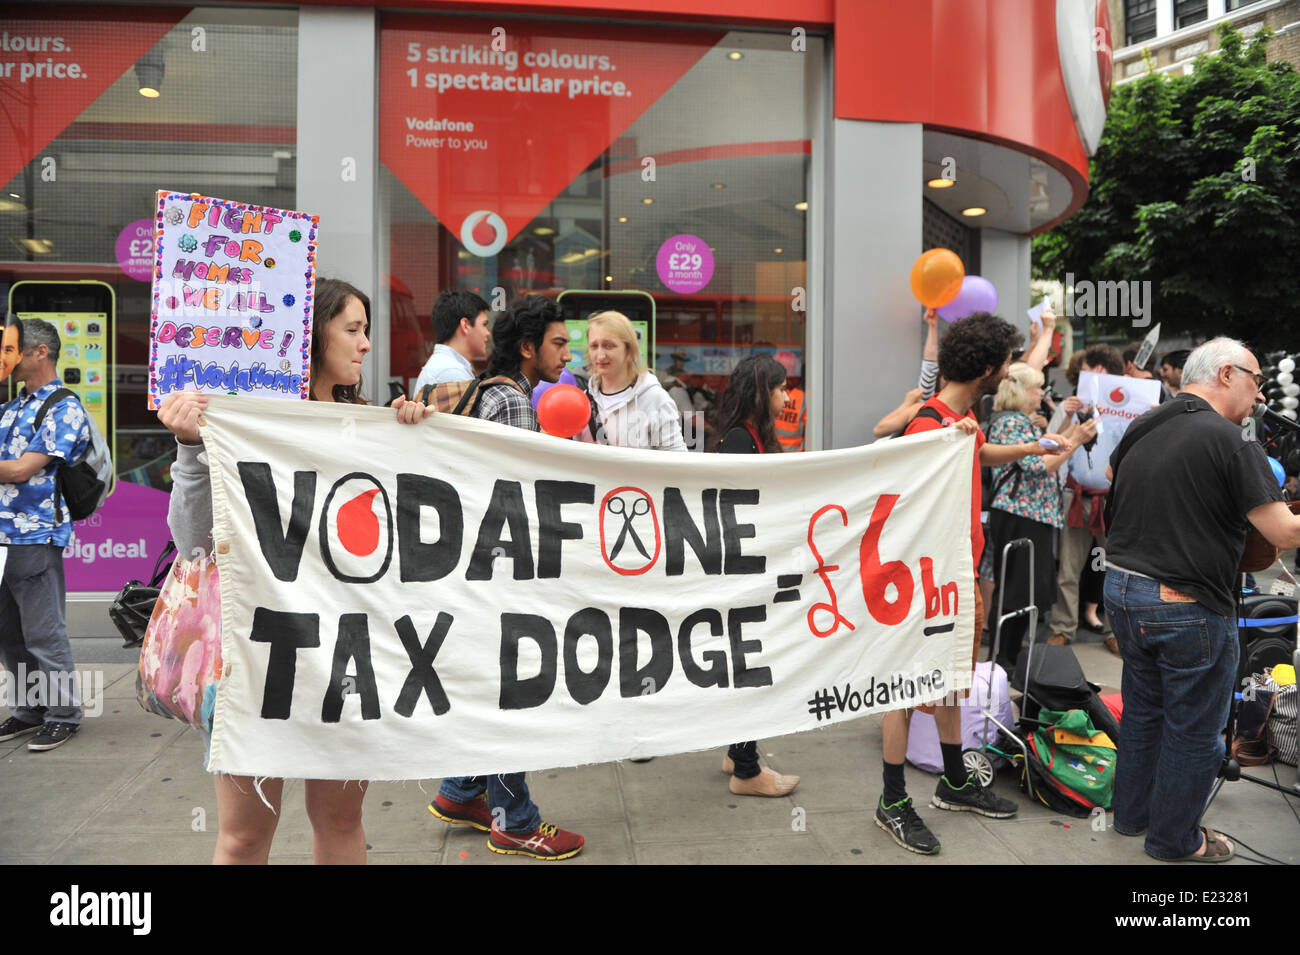 Oxford Street, London, UK. 14th June 2014. Protesters outside the Vodaphone shop on Oxford Street, part of a nationwide - Stock Image